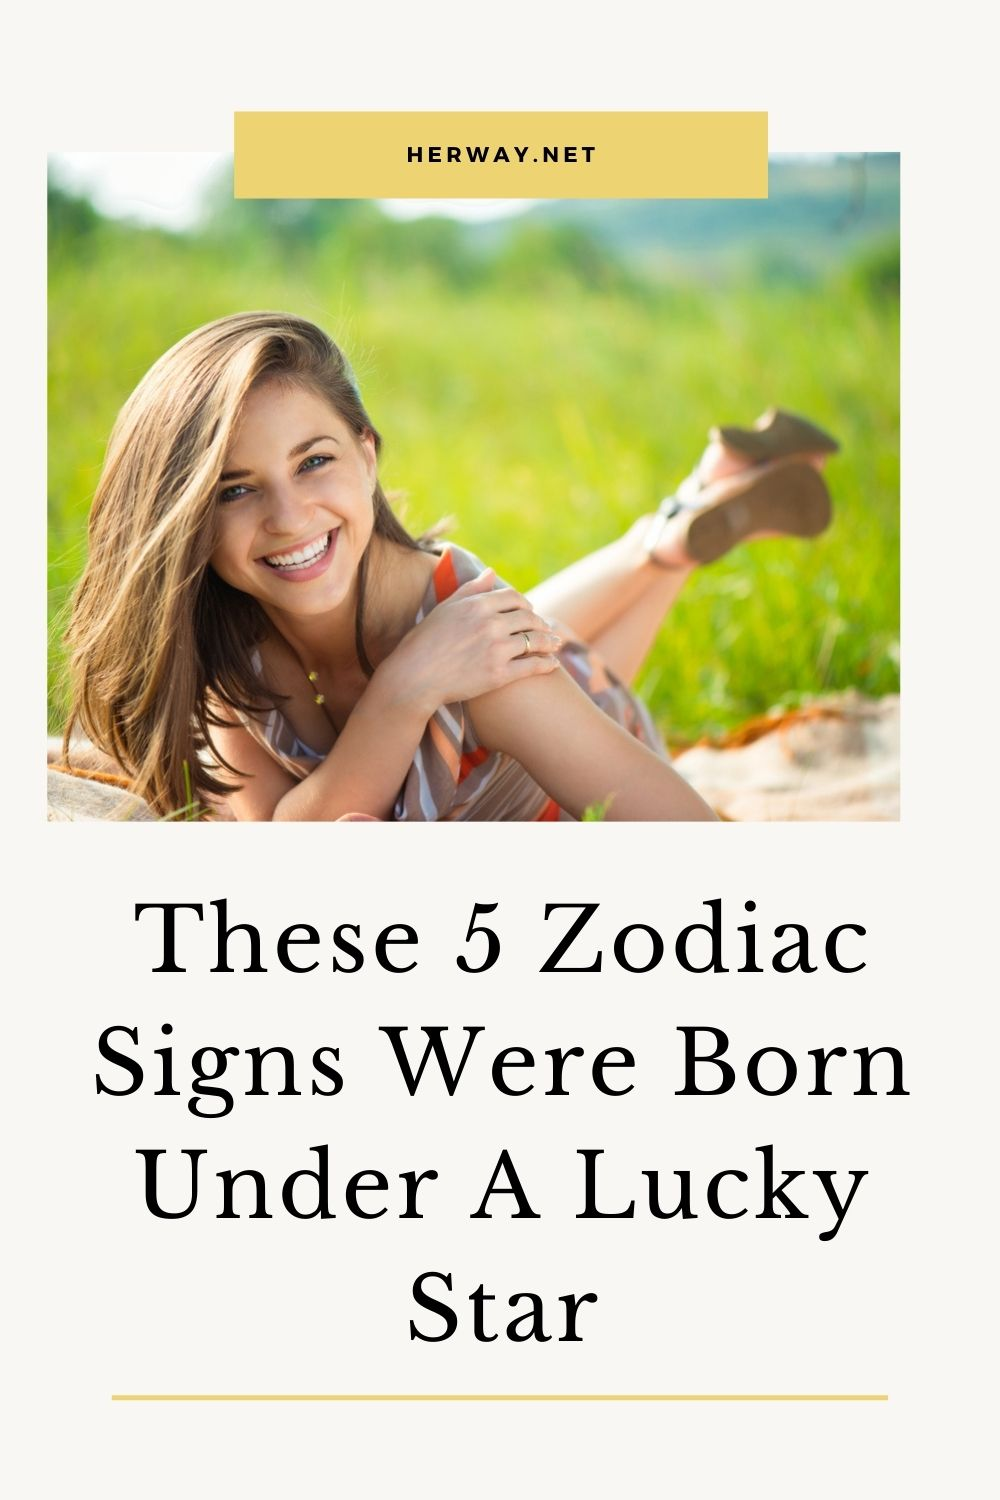 These 5 Zodiac Signs Were Born Under A Lucky Star